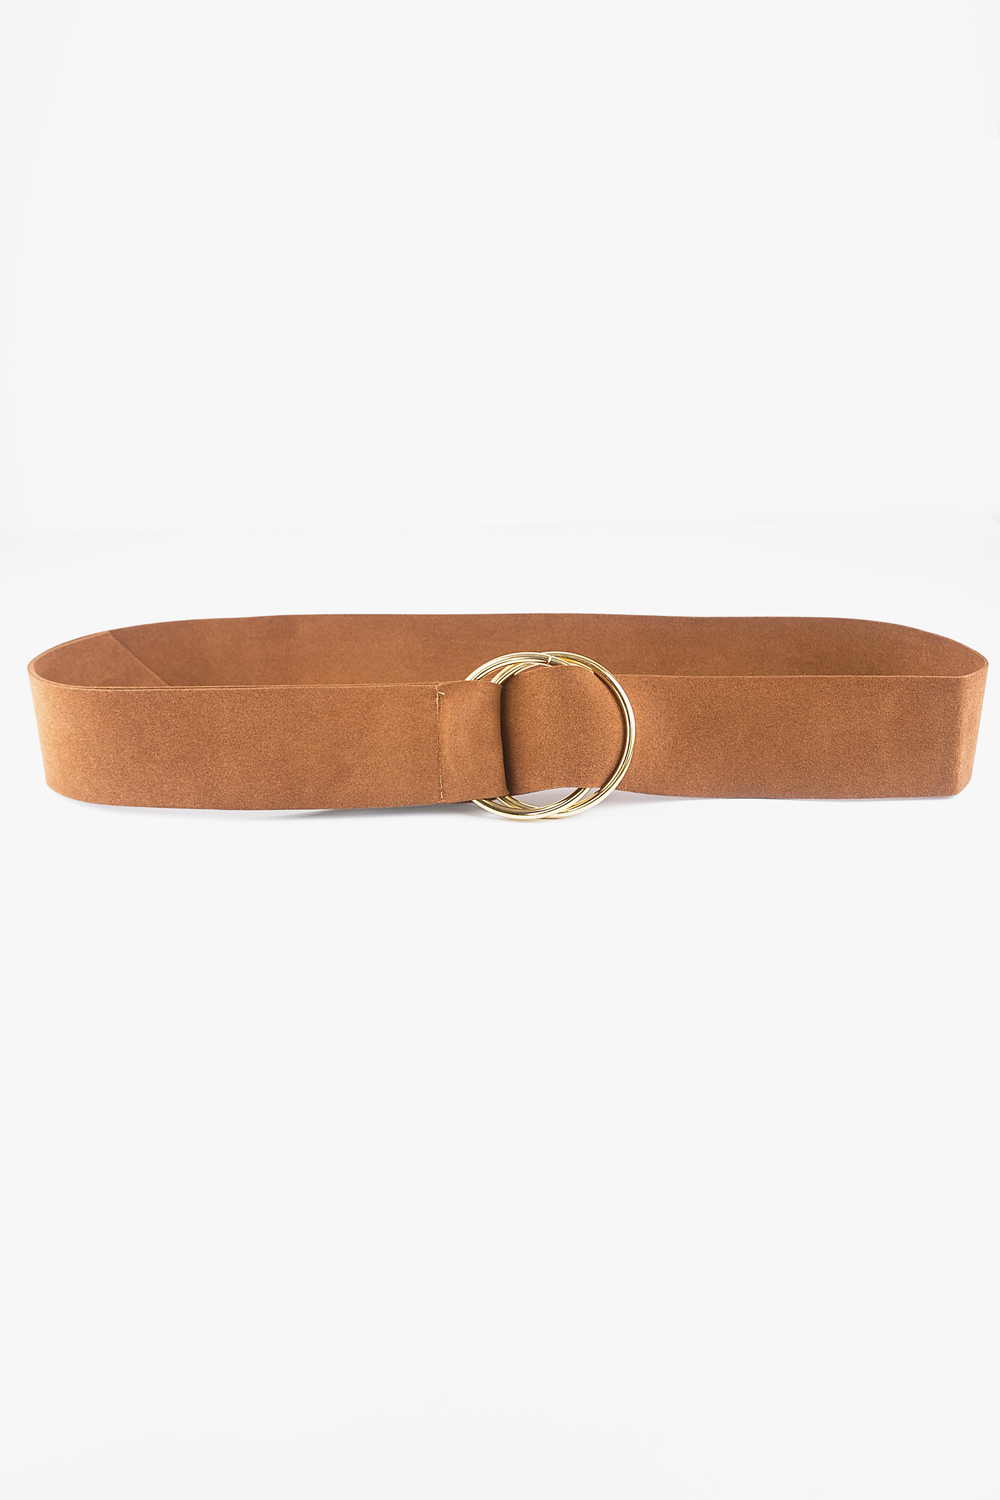 Can't Be Without You Belt - Haute & Rebellious